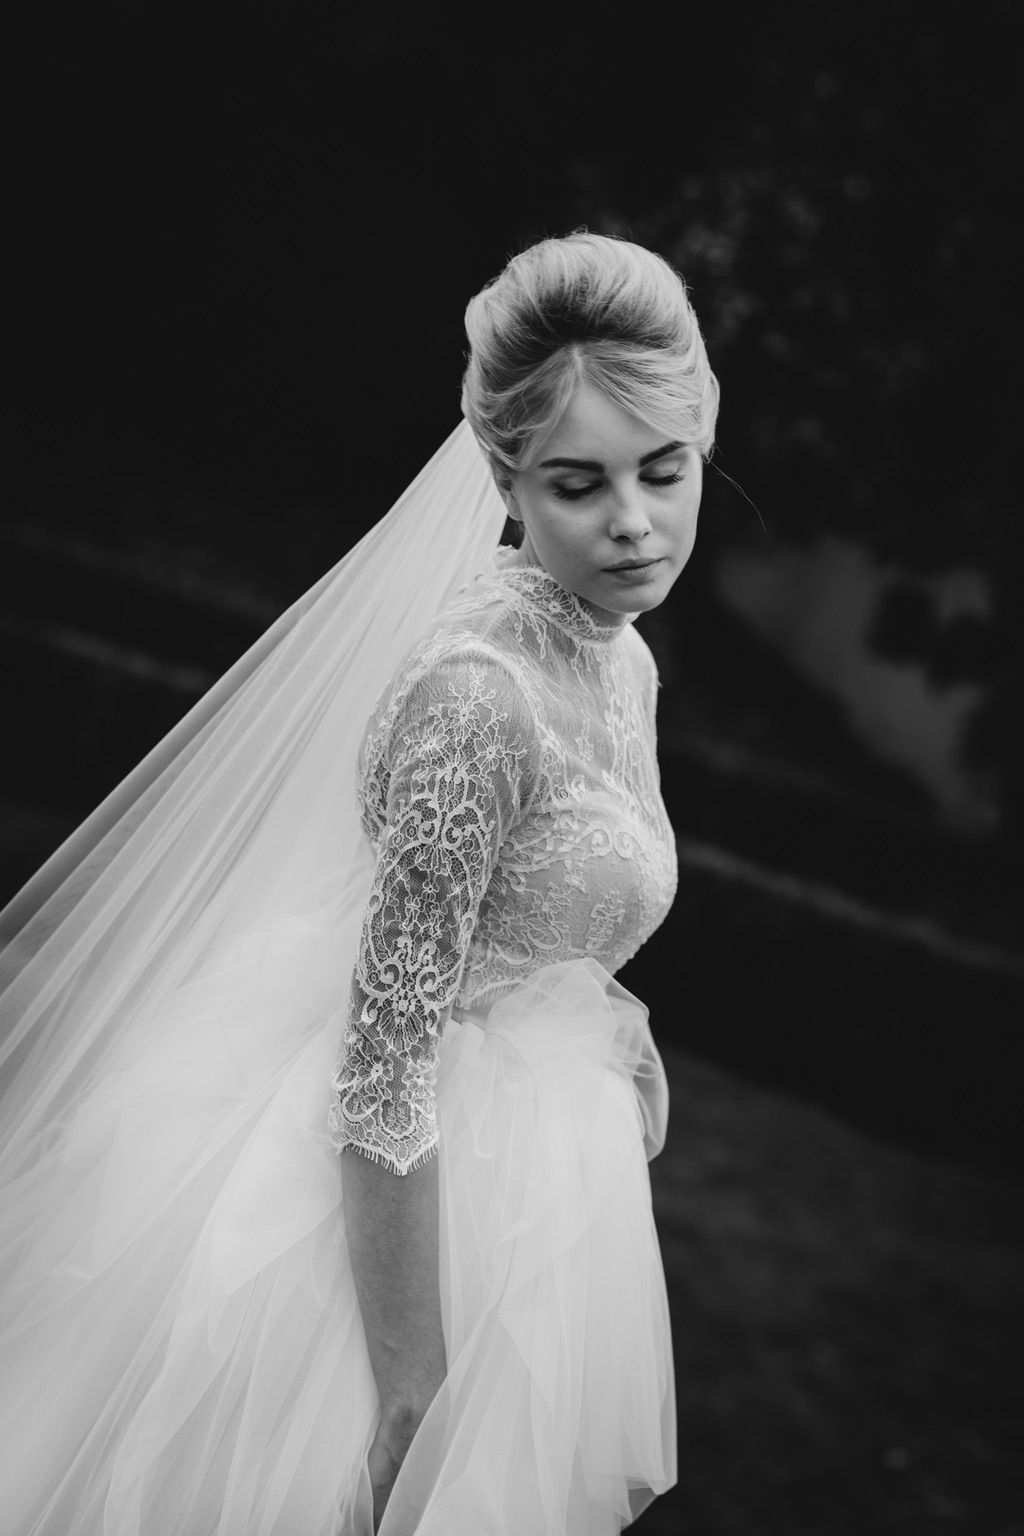 long veil tulle and lace ball gown wedding dress real wedding in Firenze